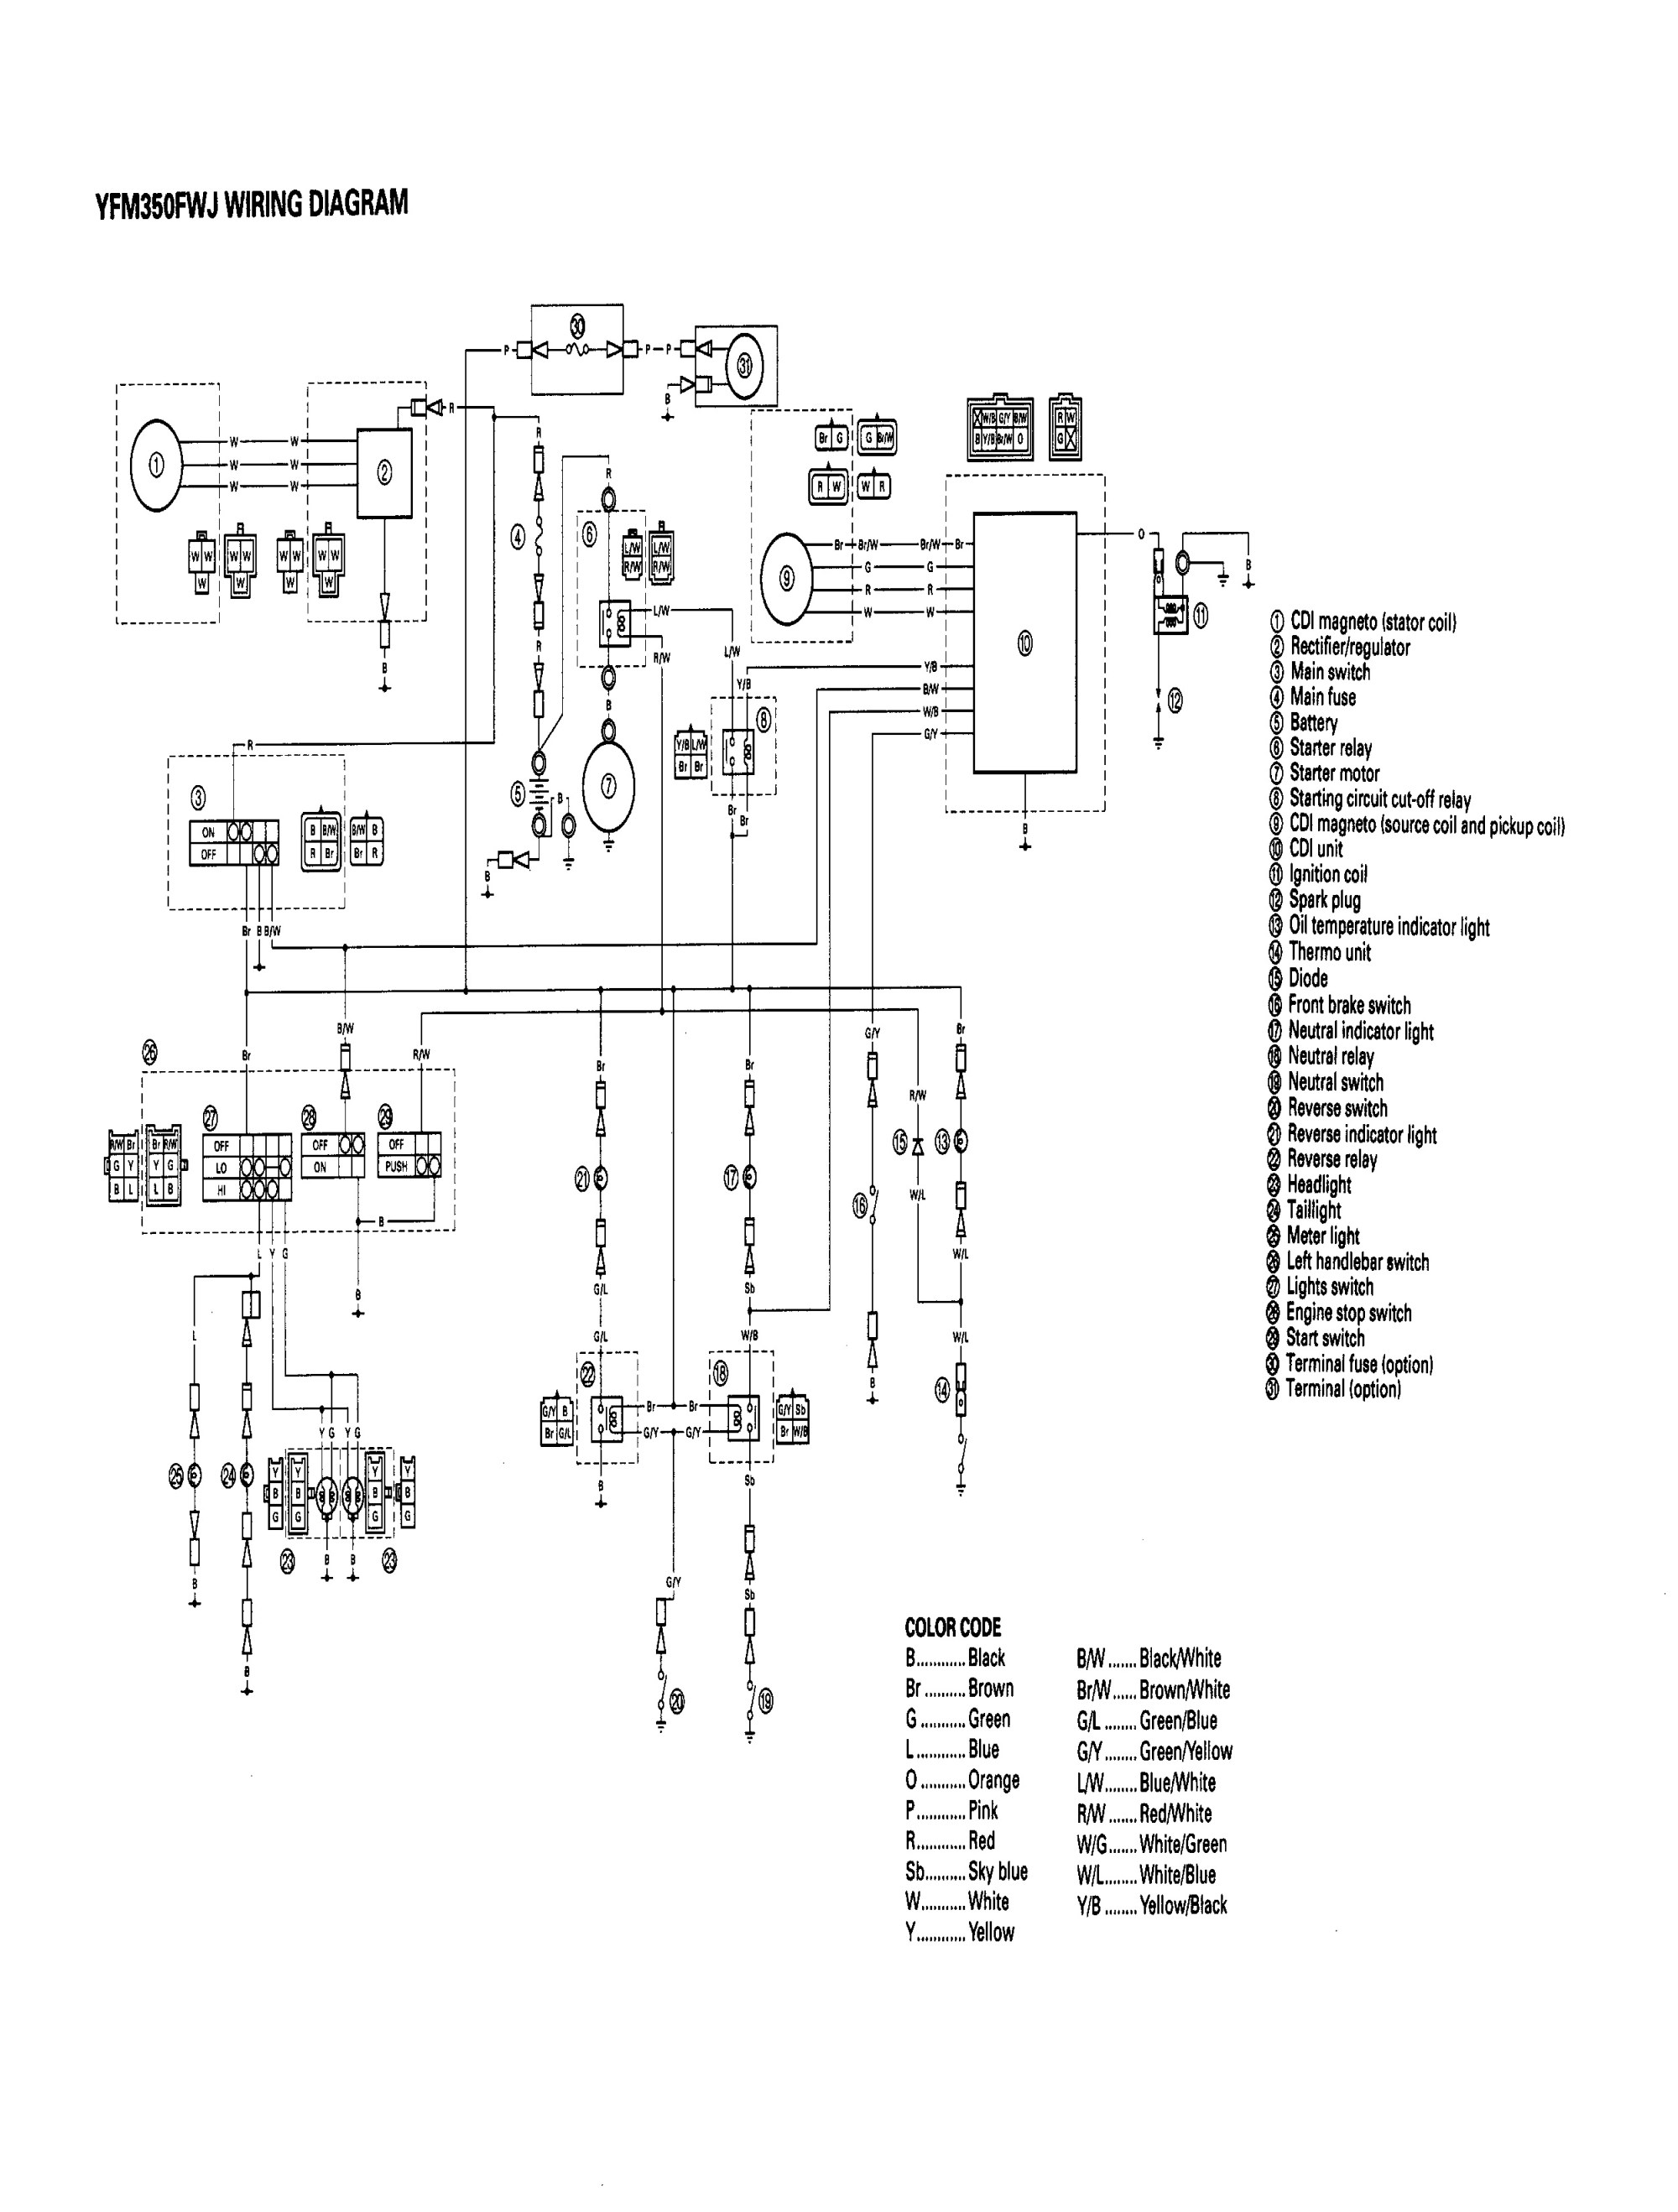 hight resolution of yamaha snowmobile wiring diagrams wiring diagrams monyamaha snowmobile wiring diagrams wiring diagram 2007 yamaha phazer wiring